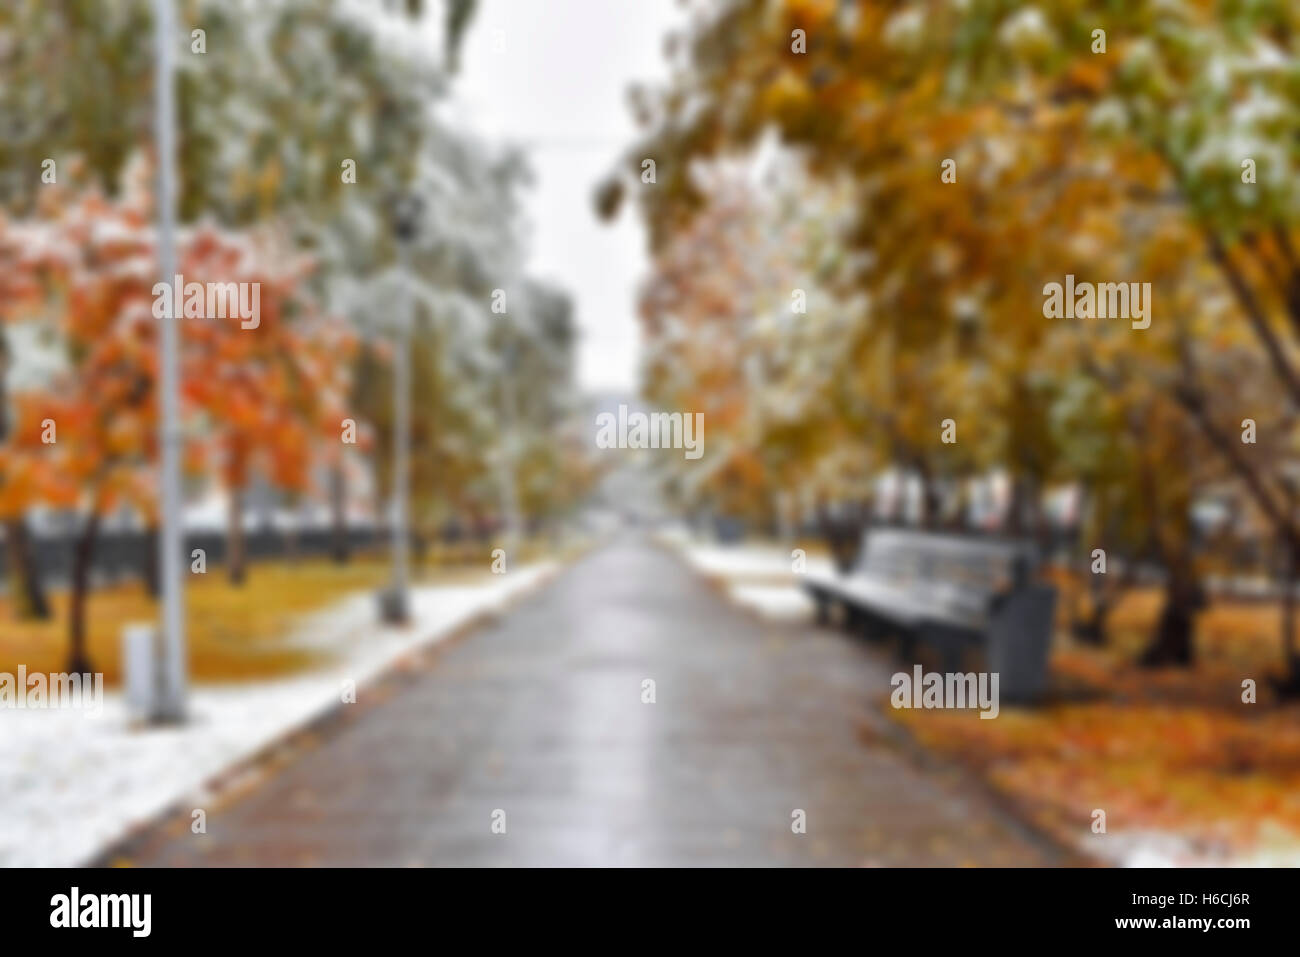 City alley with the first snow - blurred image - Stock Image